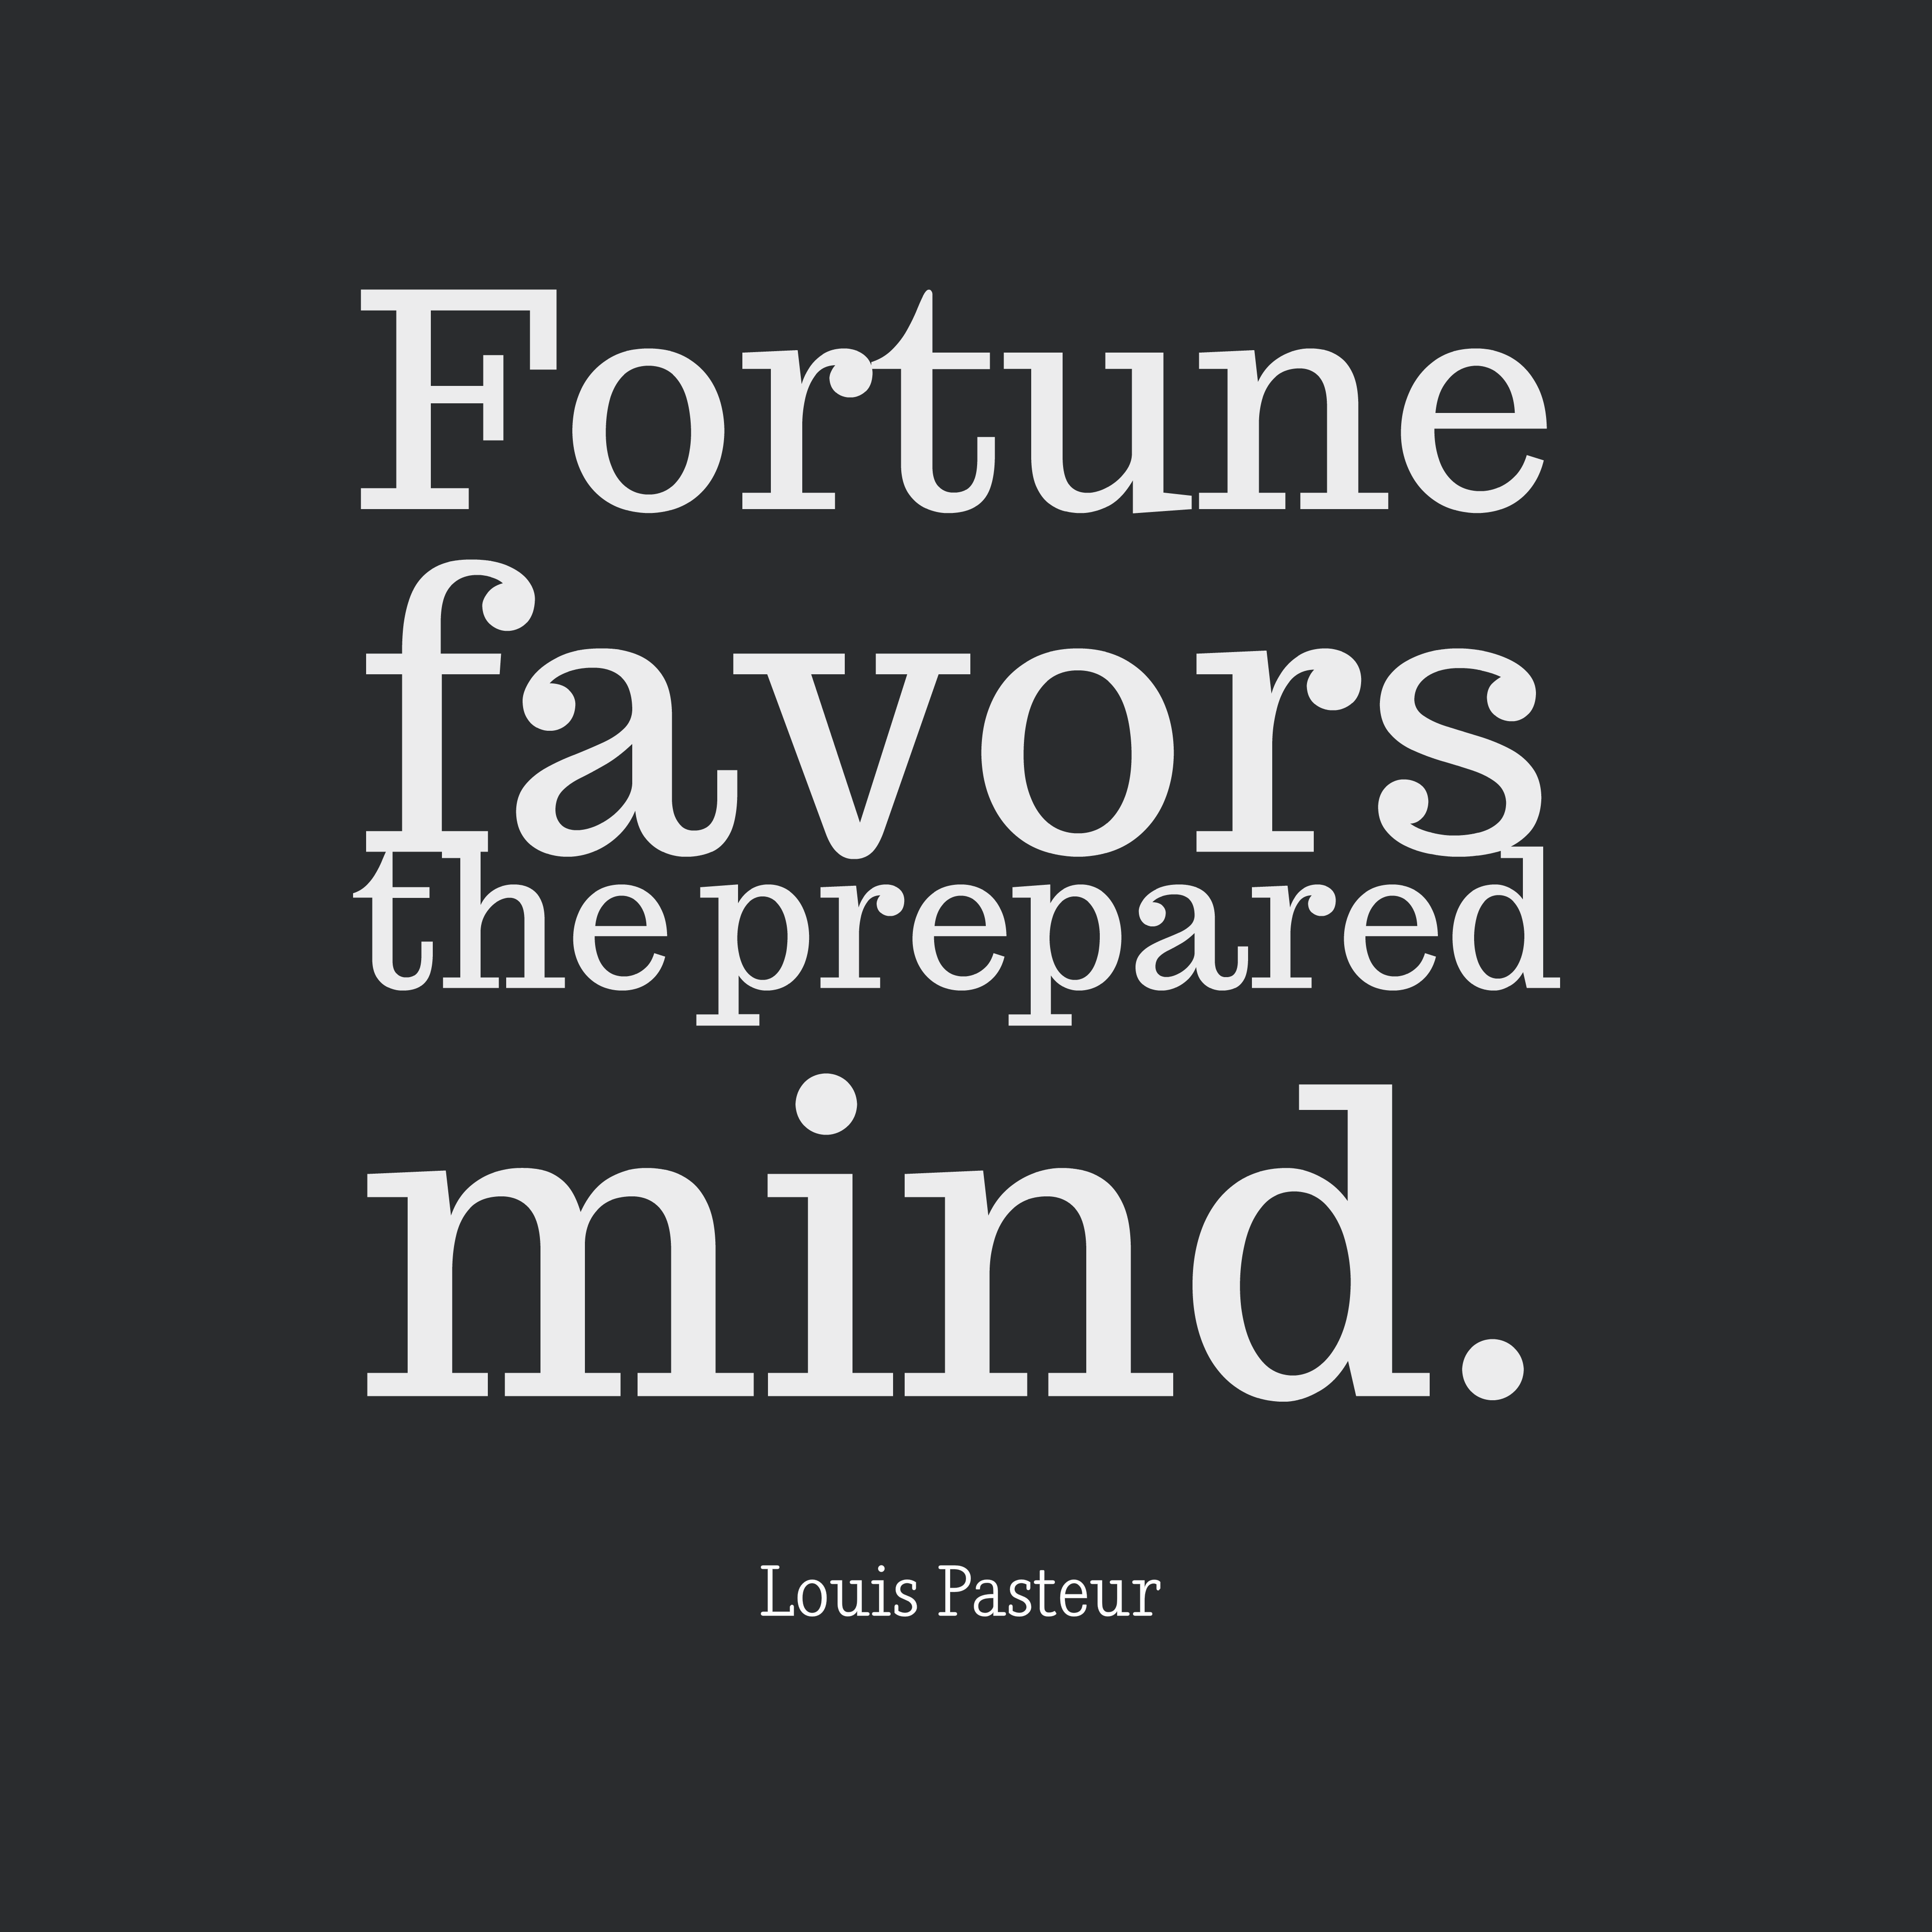 Picture Louis Pasteur Quote About Fortune Quotescover Com